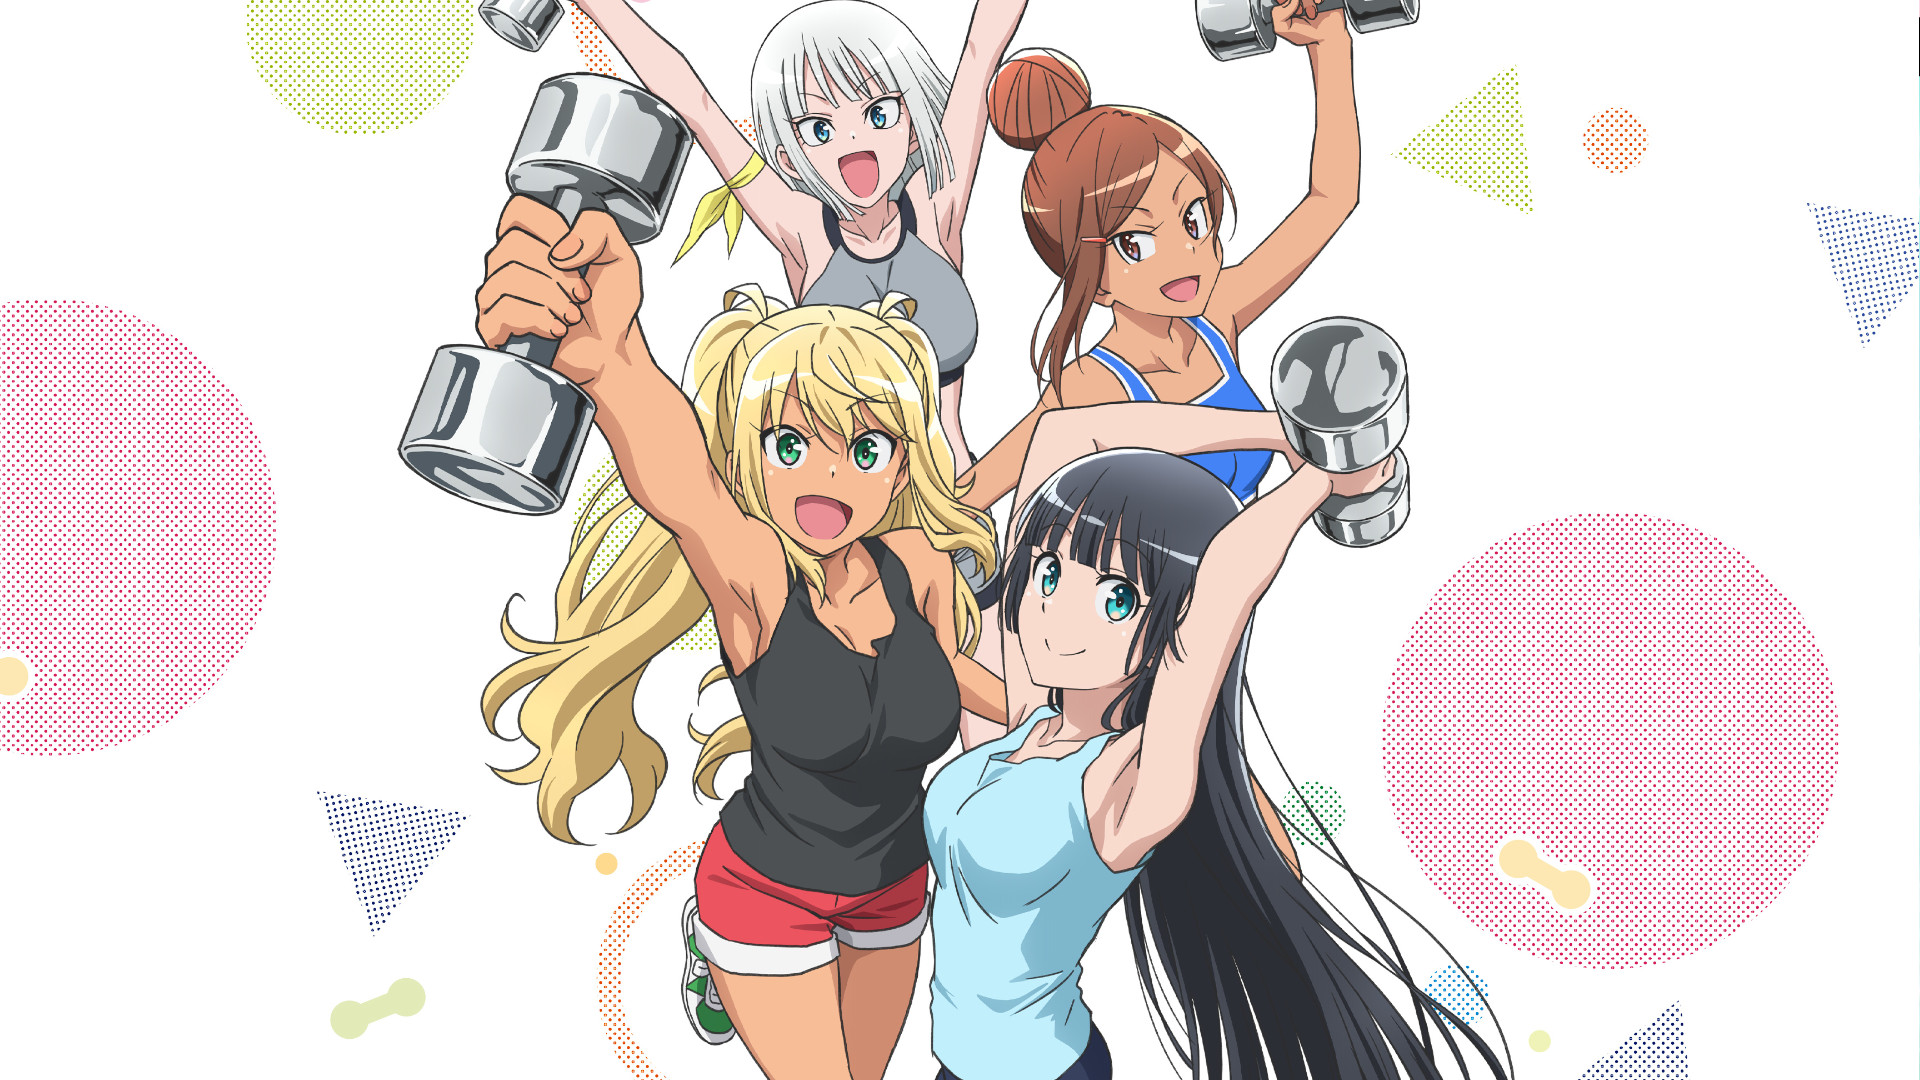 Anime Review: How Heavy Are the Dumbbells You Lift?